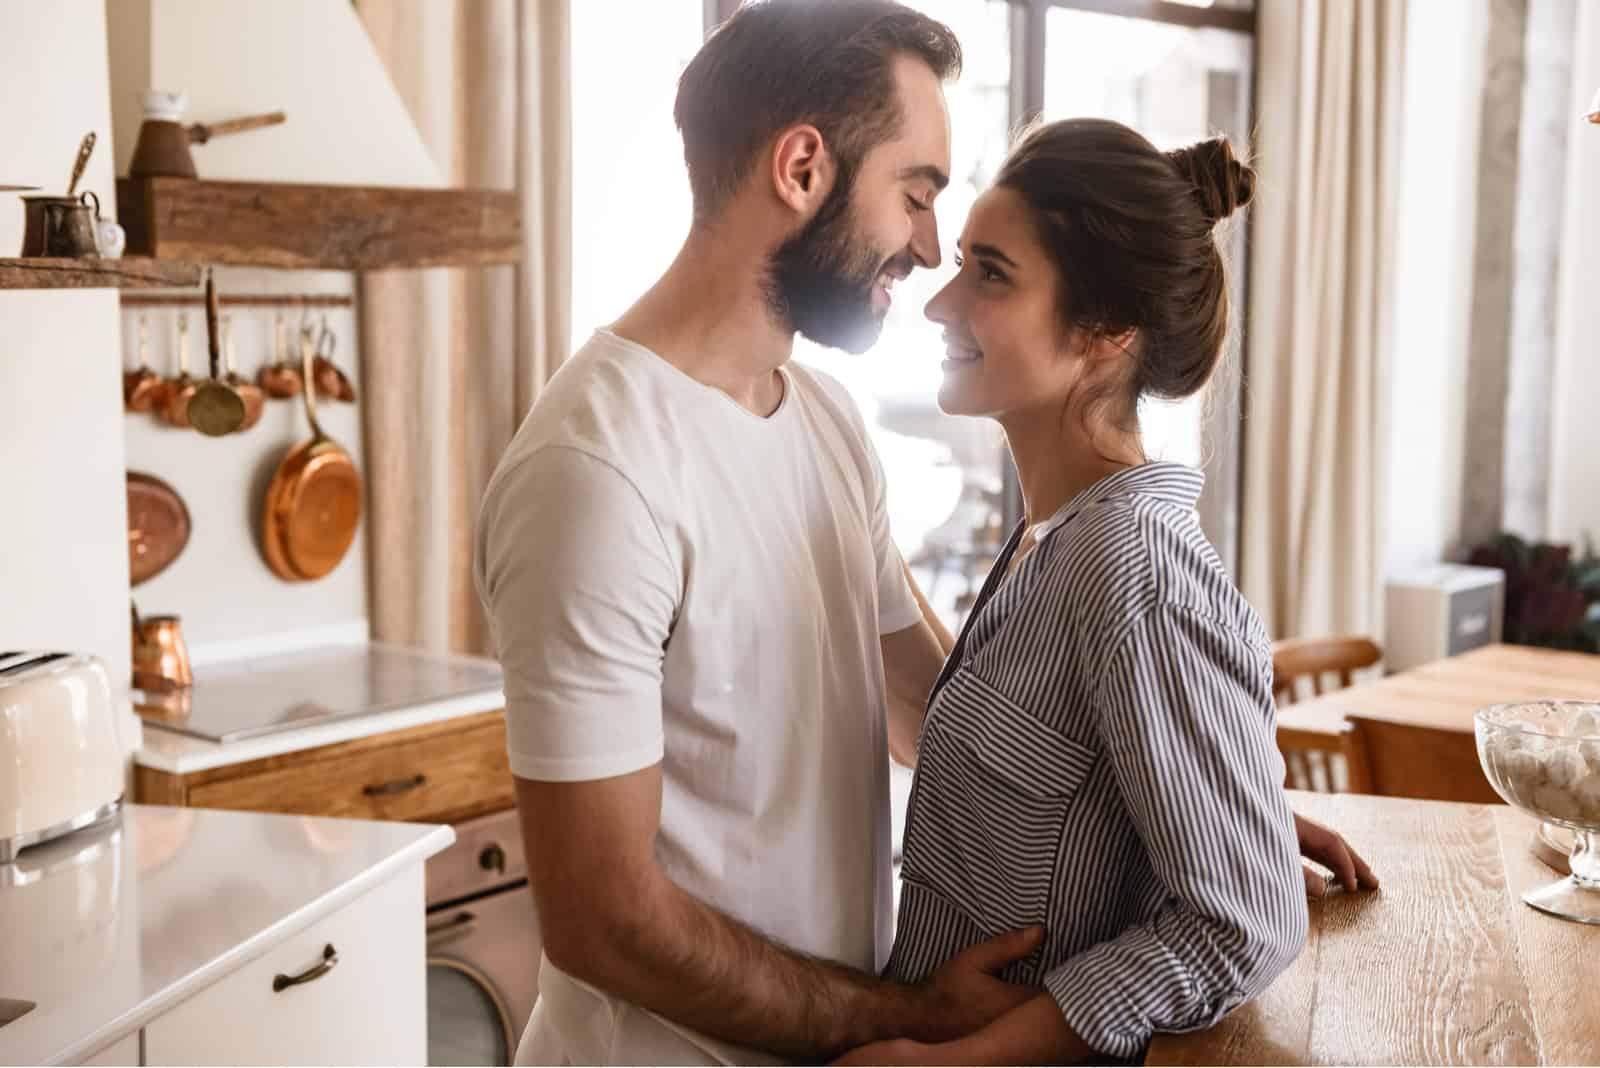 a man and a woman embracing in the kitchen